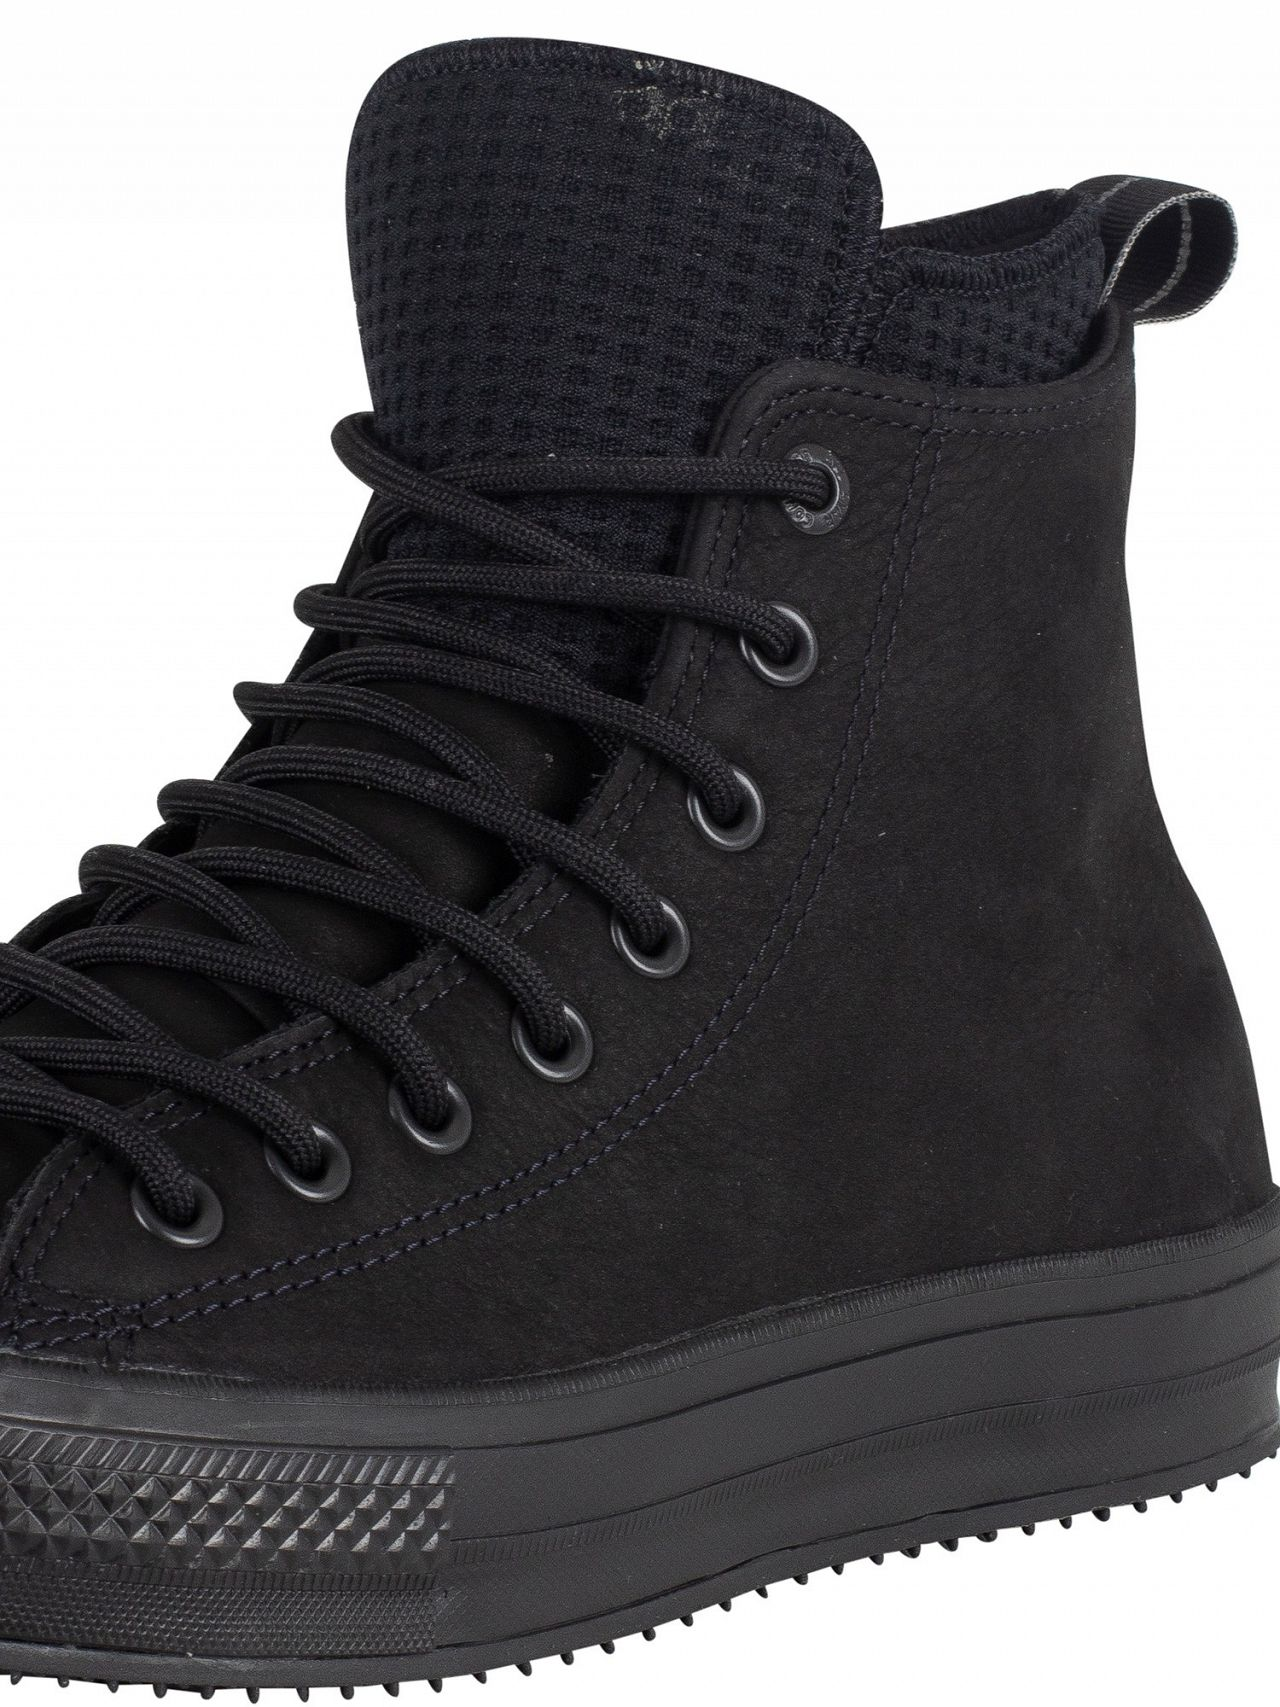 8b05c5a003c4 Converse Black Black CT All Star Hi WP Leather Boots